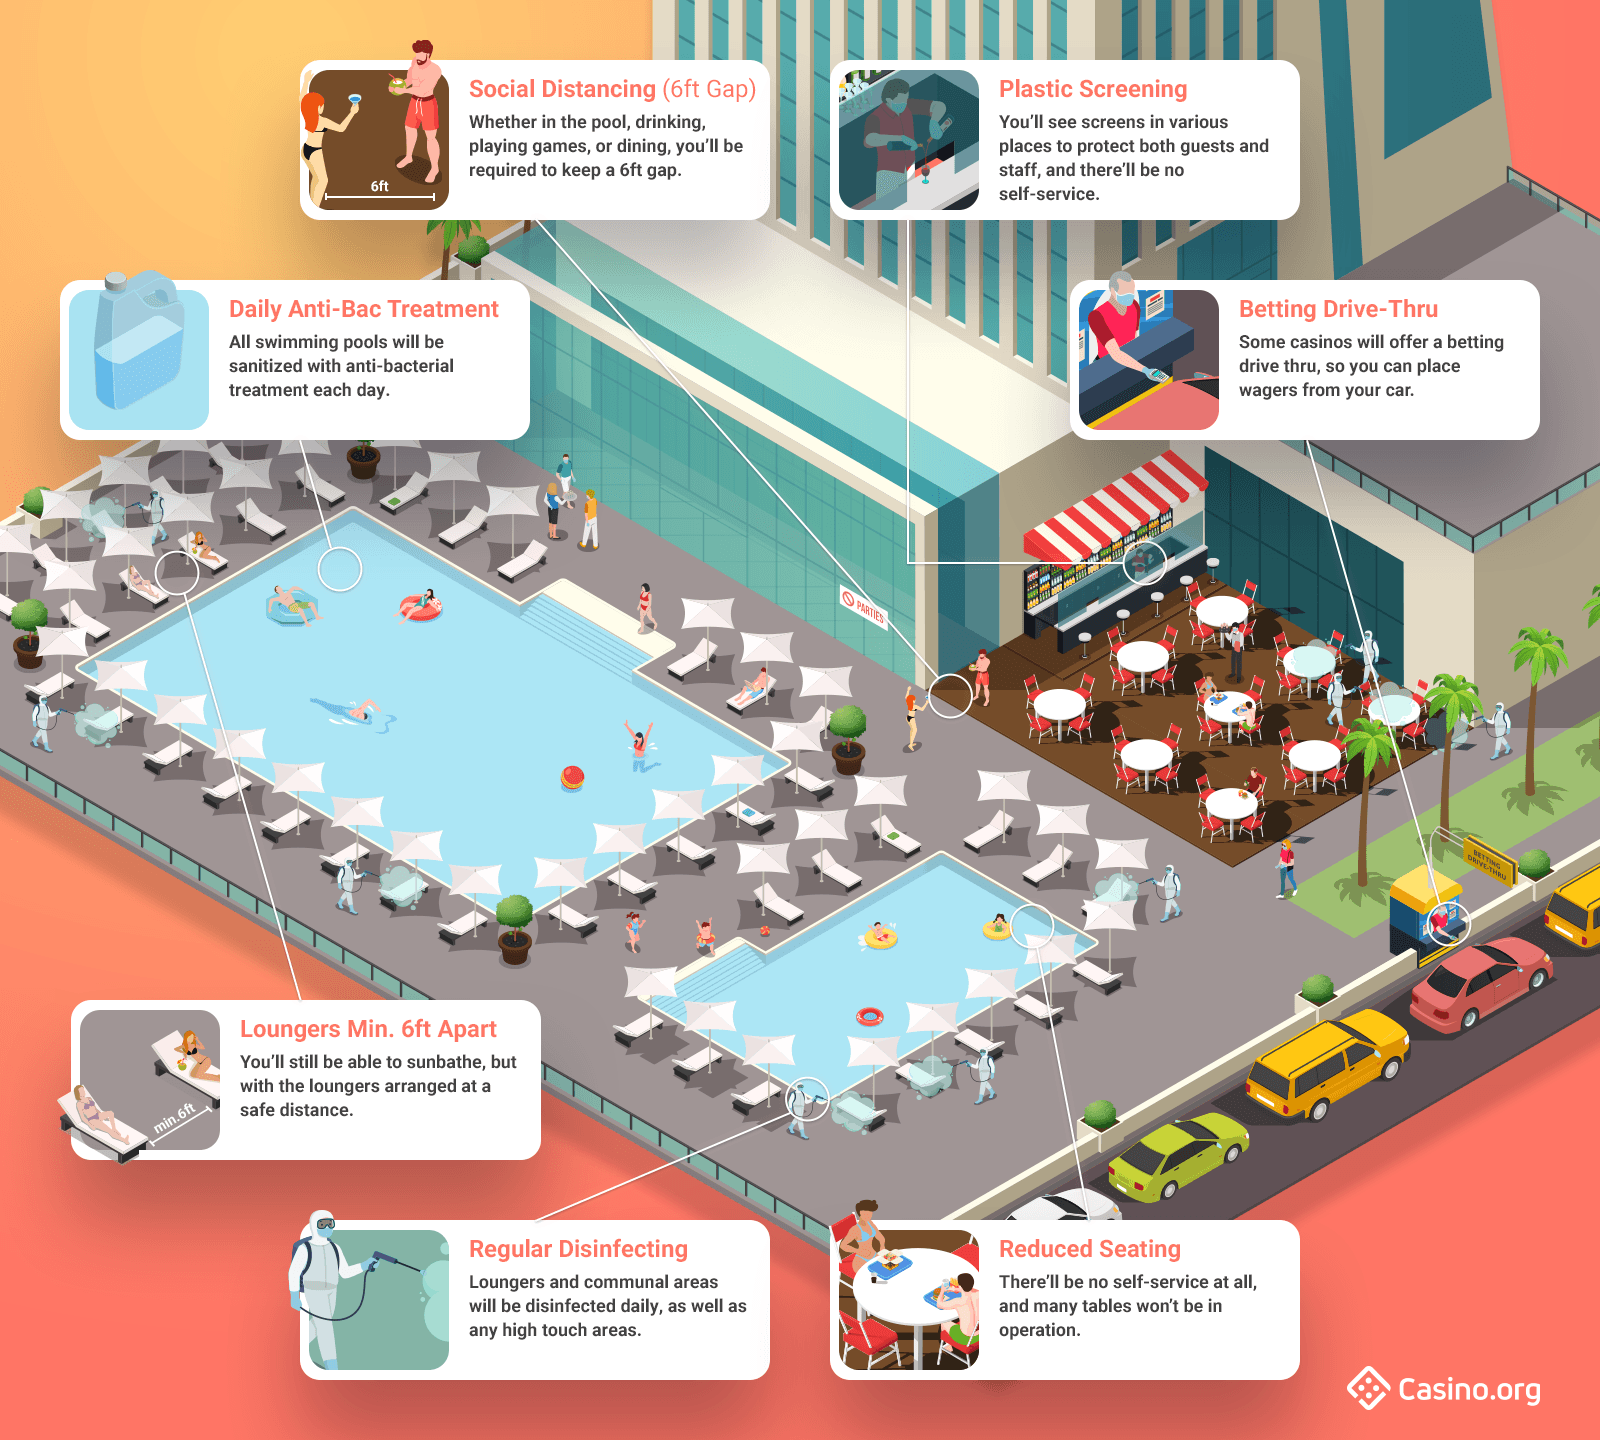 How a Vegas casino will look when it re-opens during the pandemic